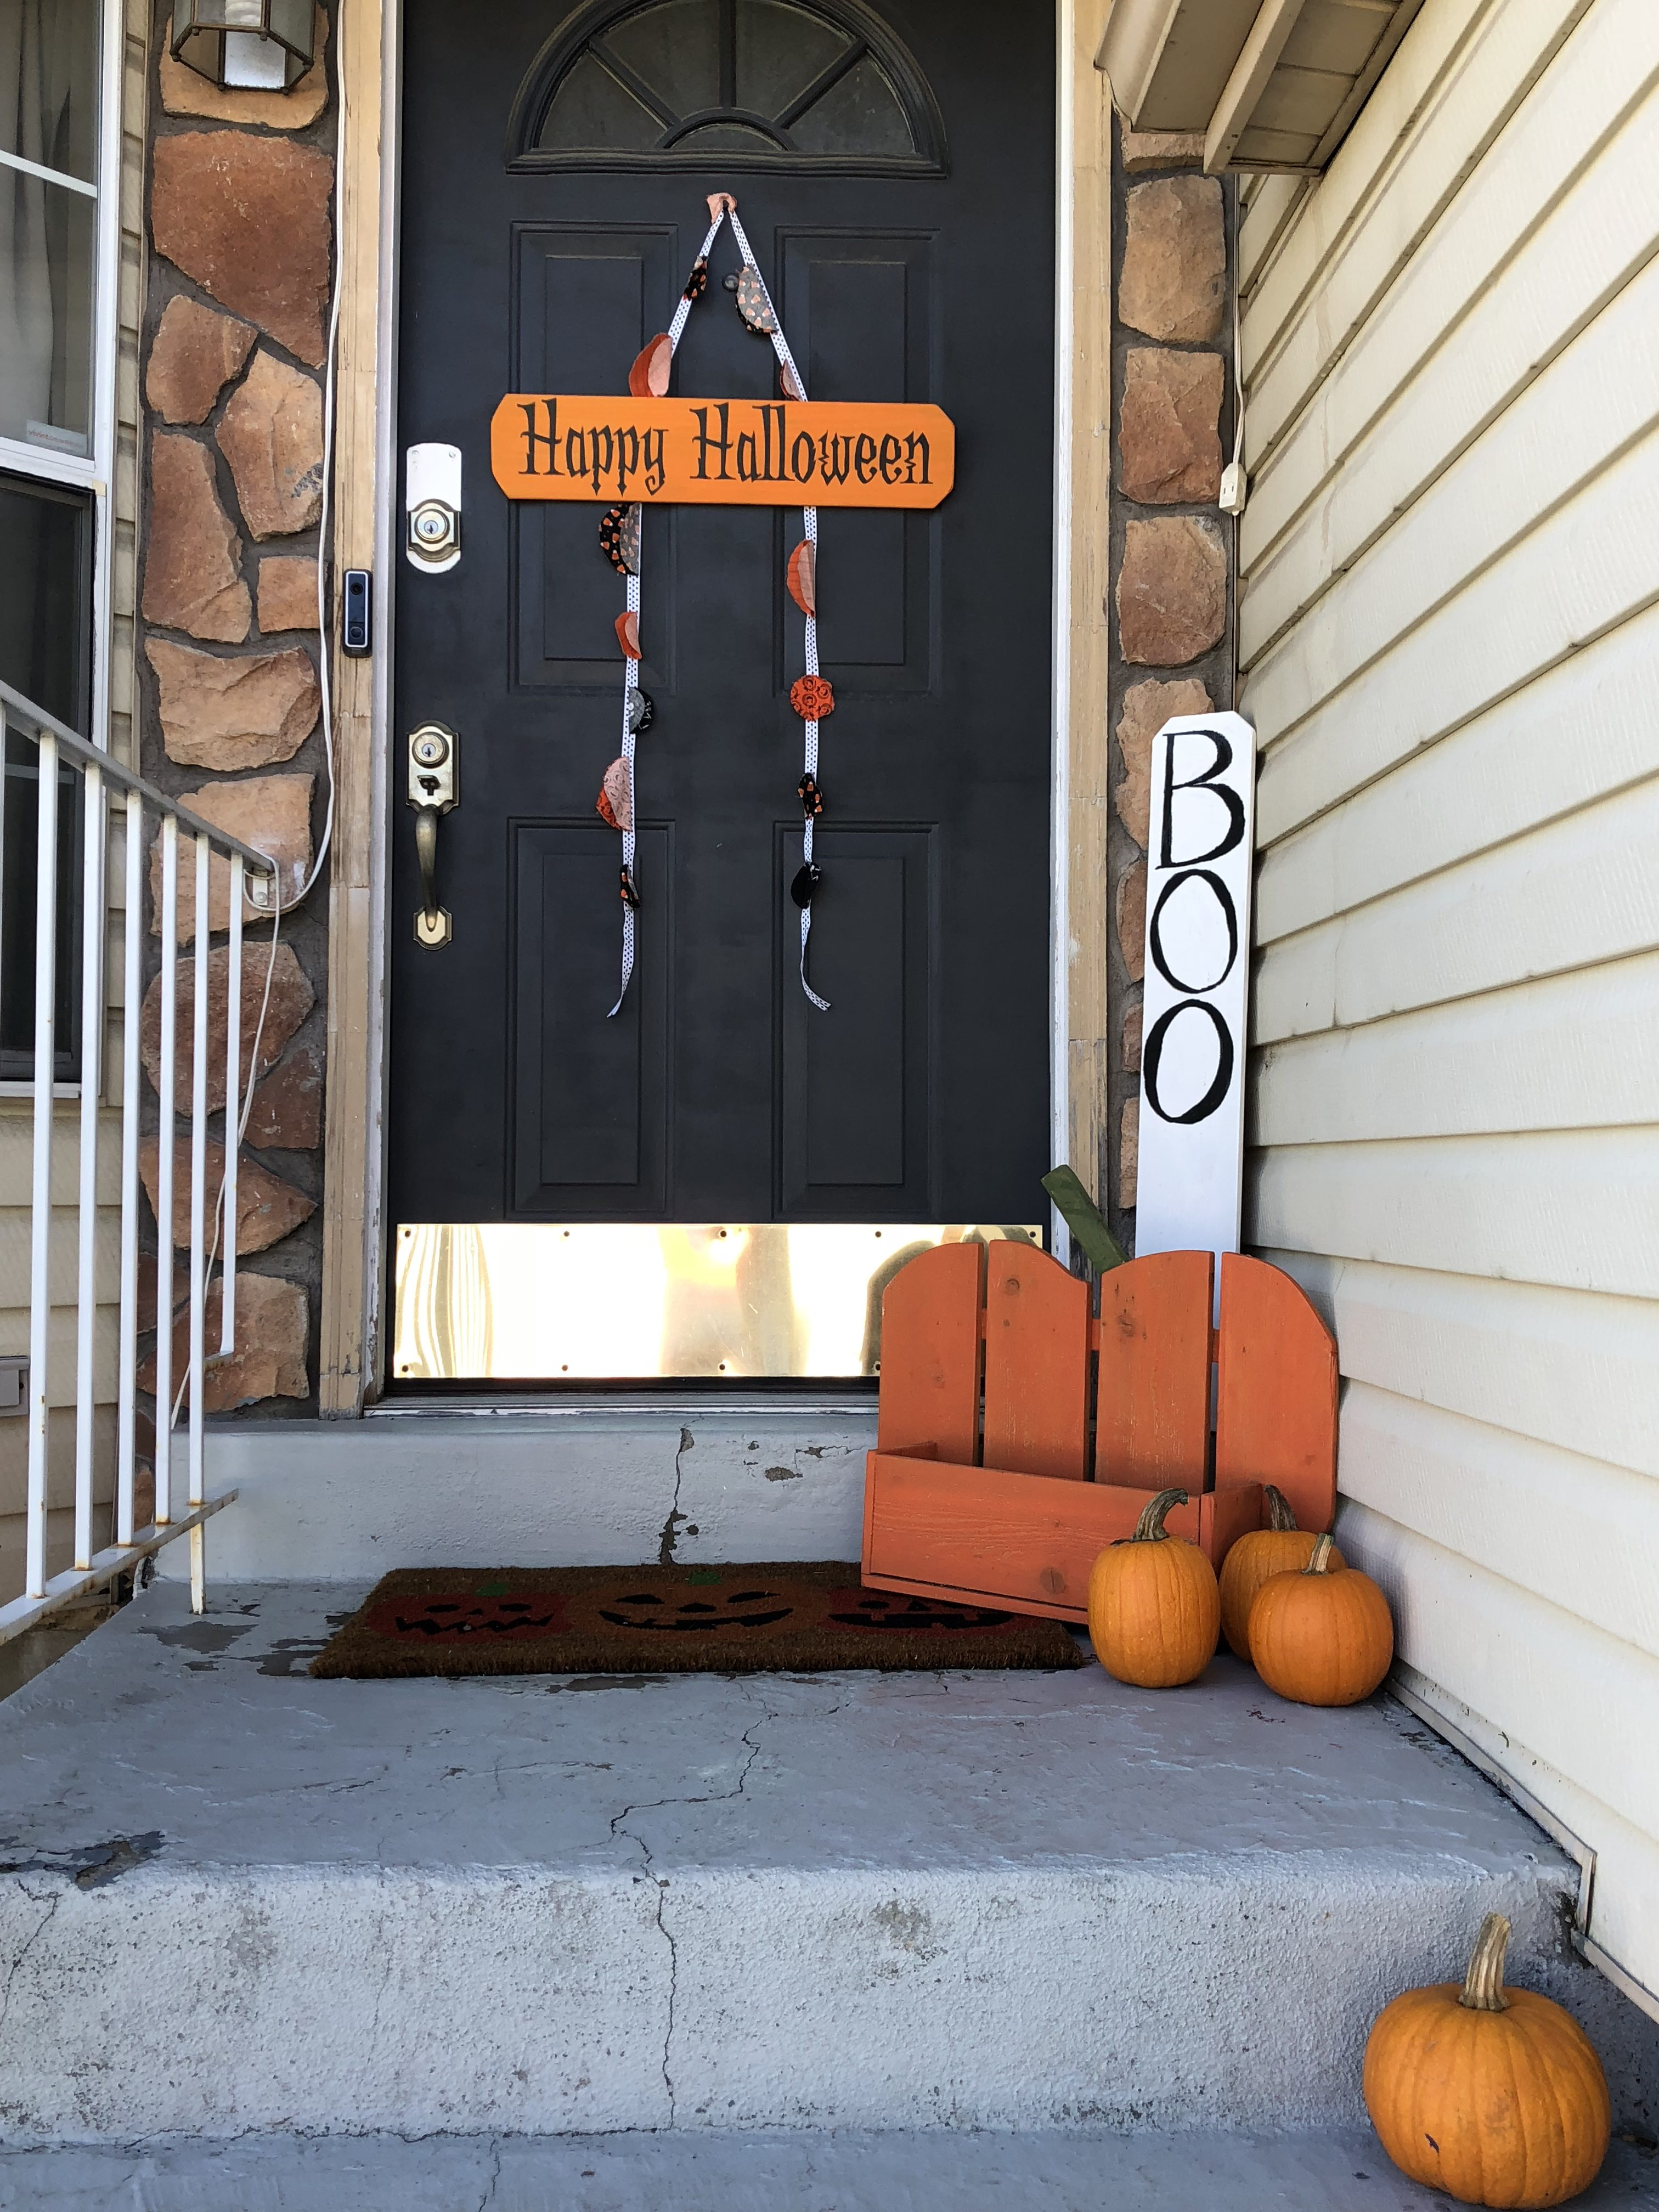 5 Fun Ways to Enhance Your Porch for Halloween